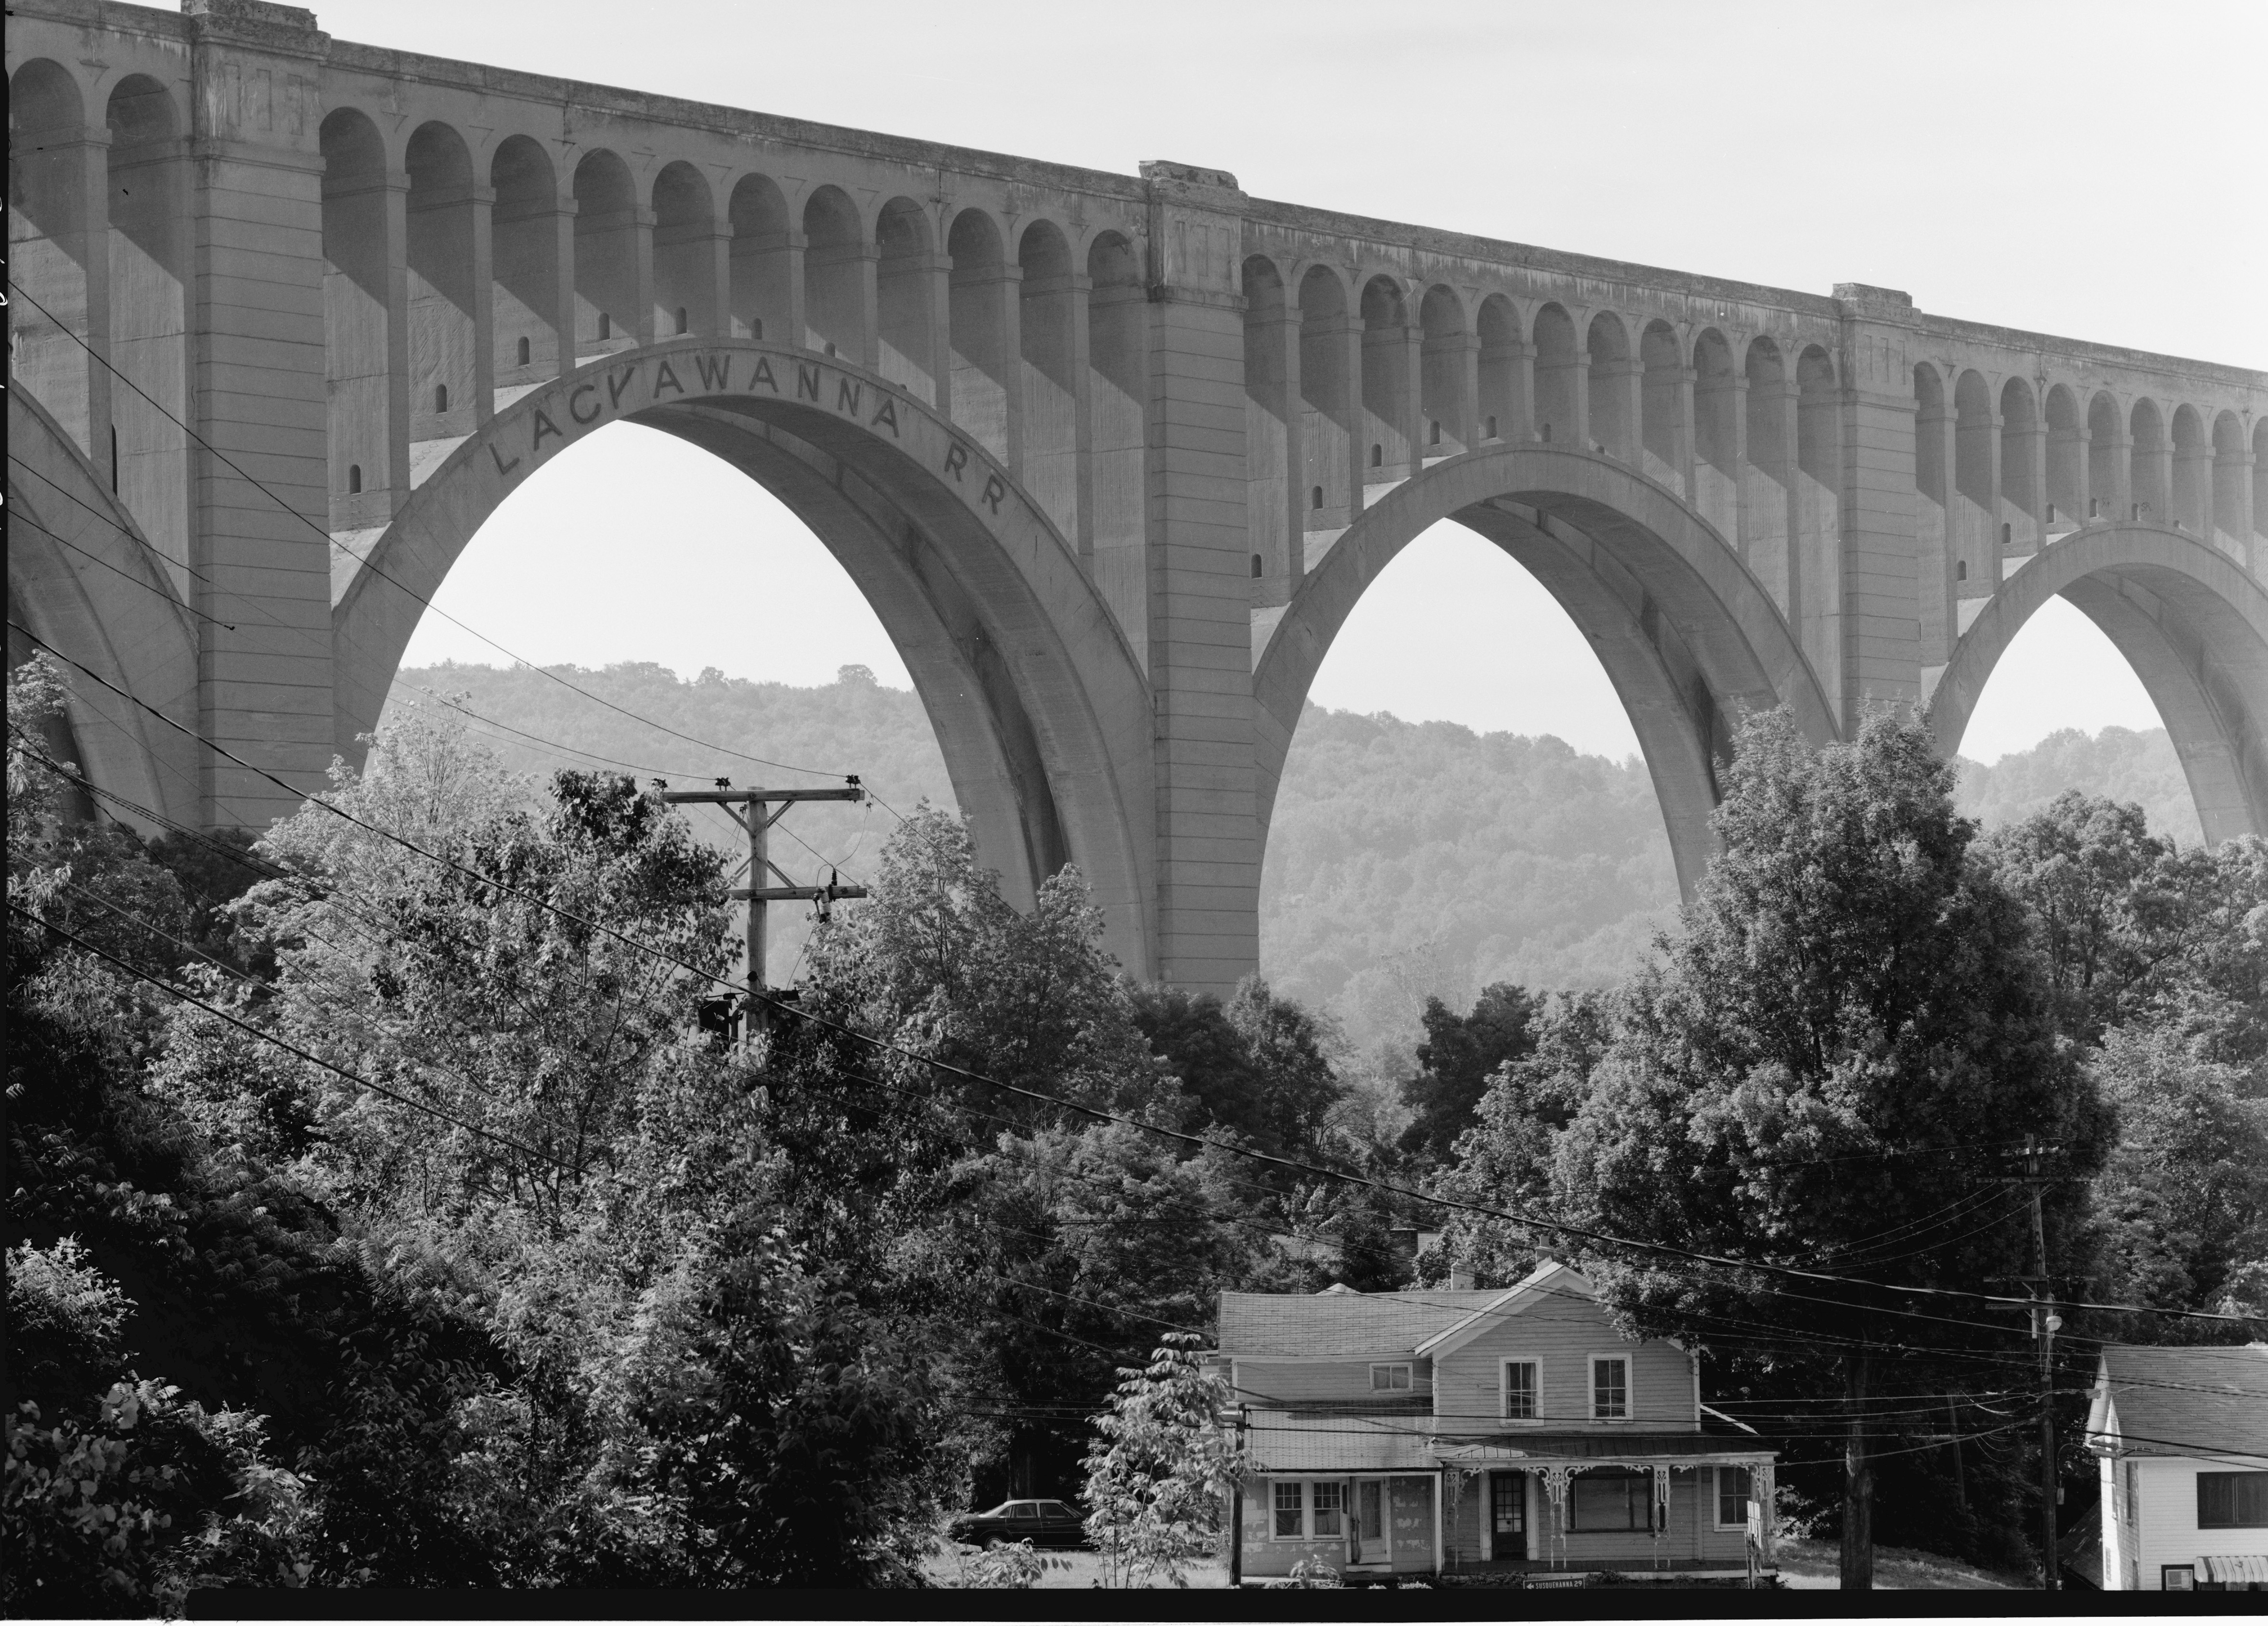 The Tunkhannock Viaduct [4712 × 3378]